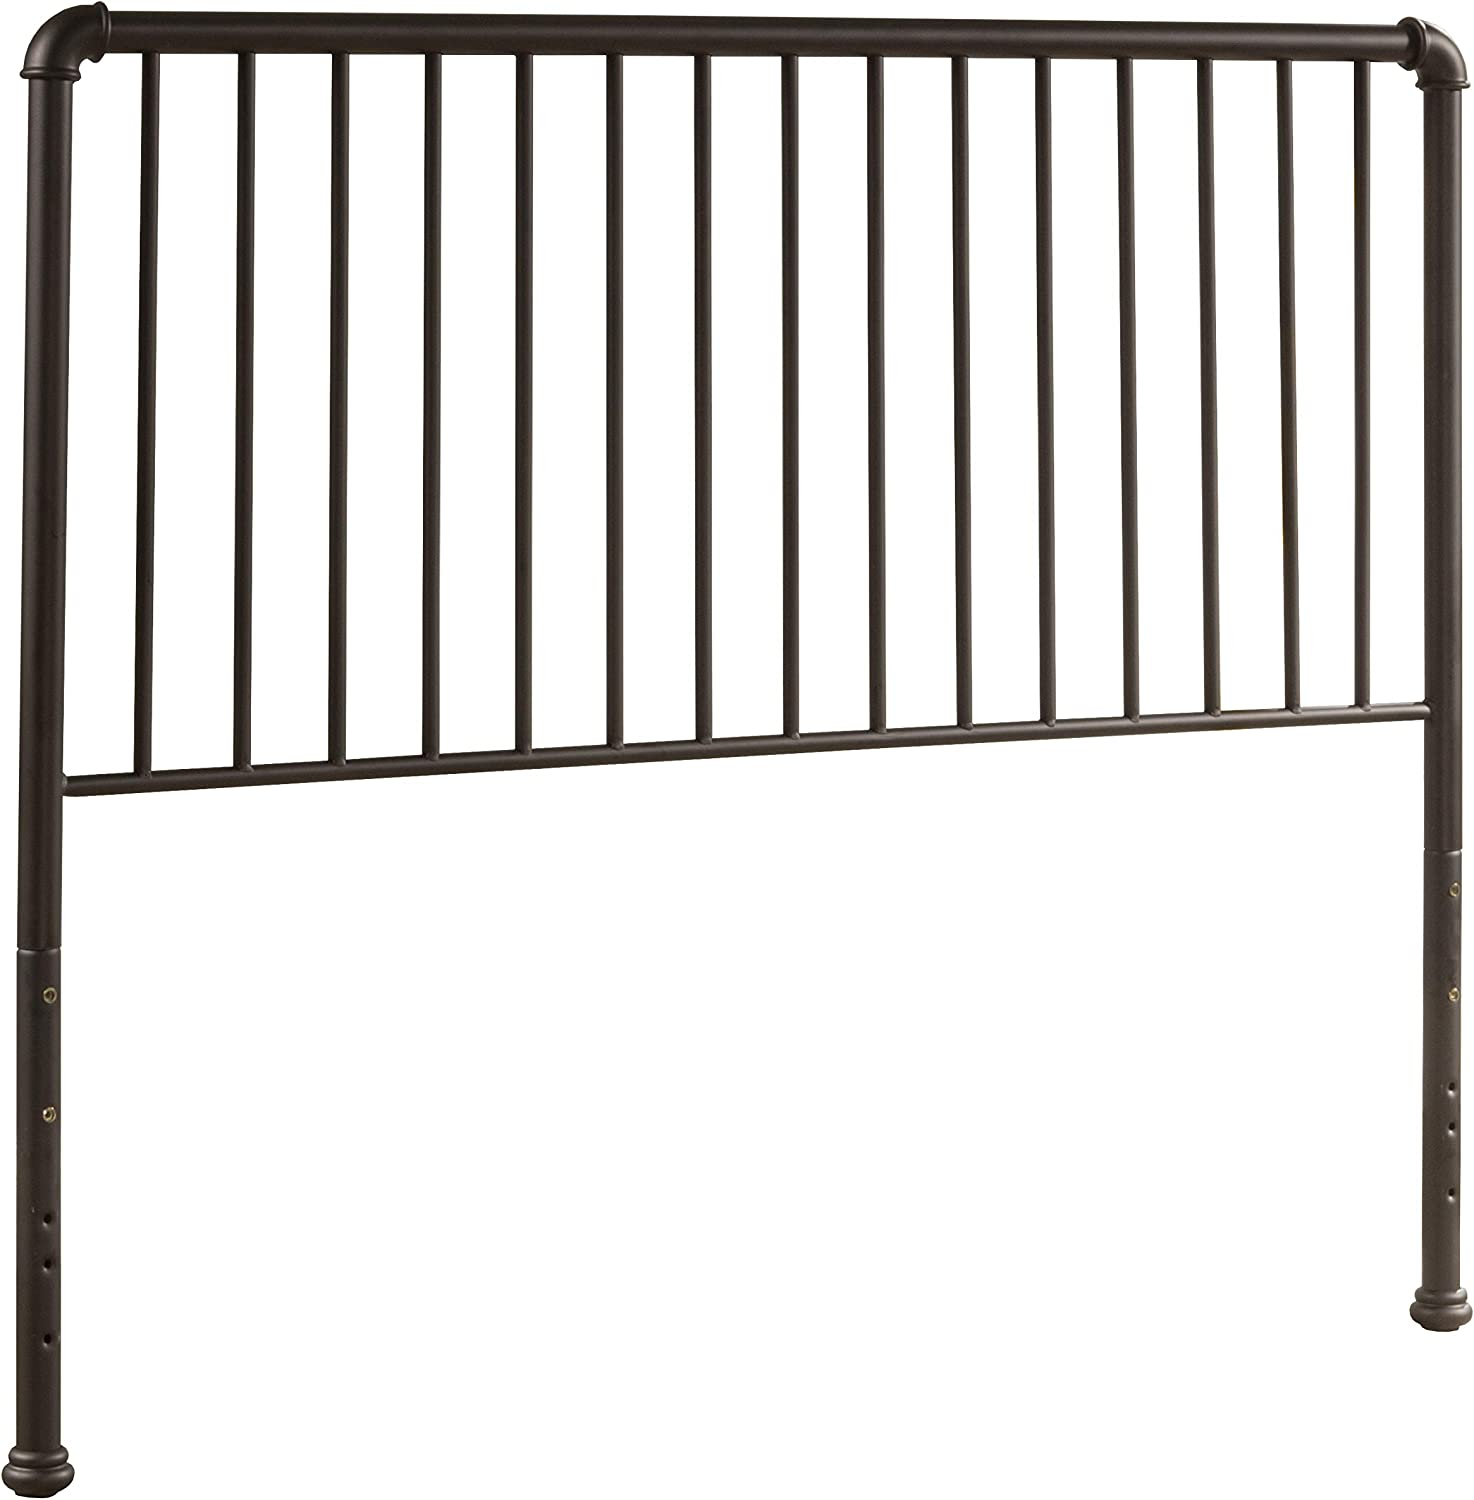 Hillsdale Furniture Hillsdale Brandi, Oiled Bronze, Frame Not Included Queen Headboard